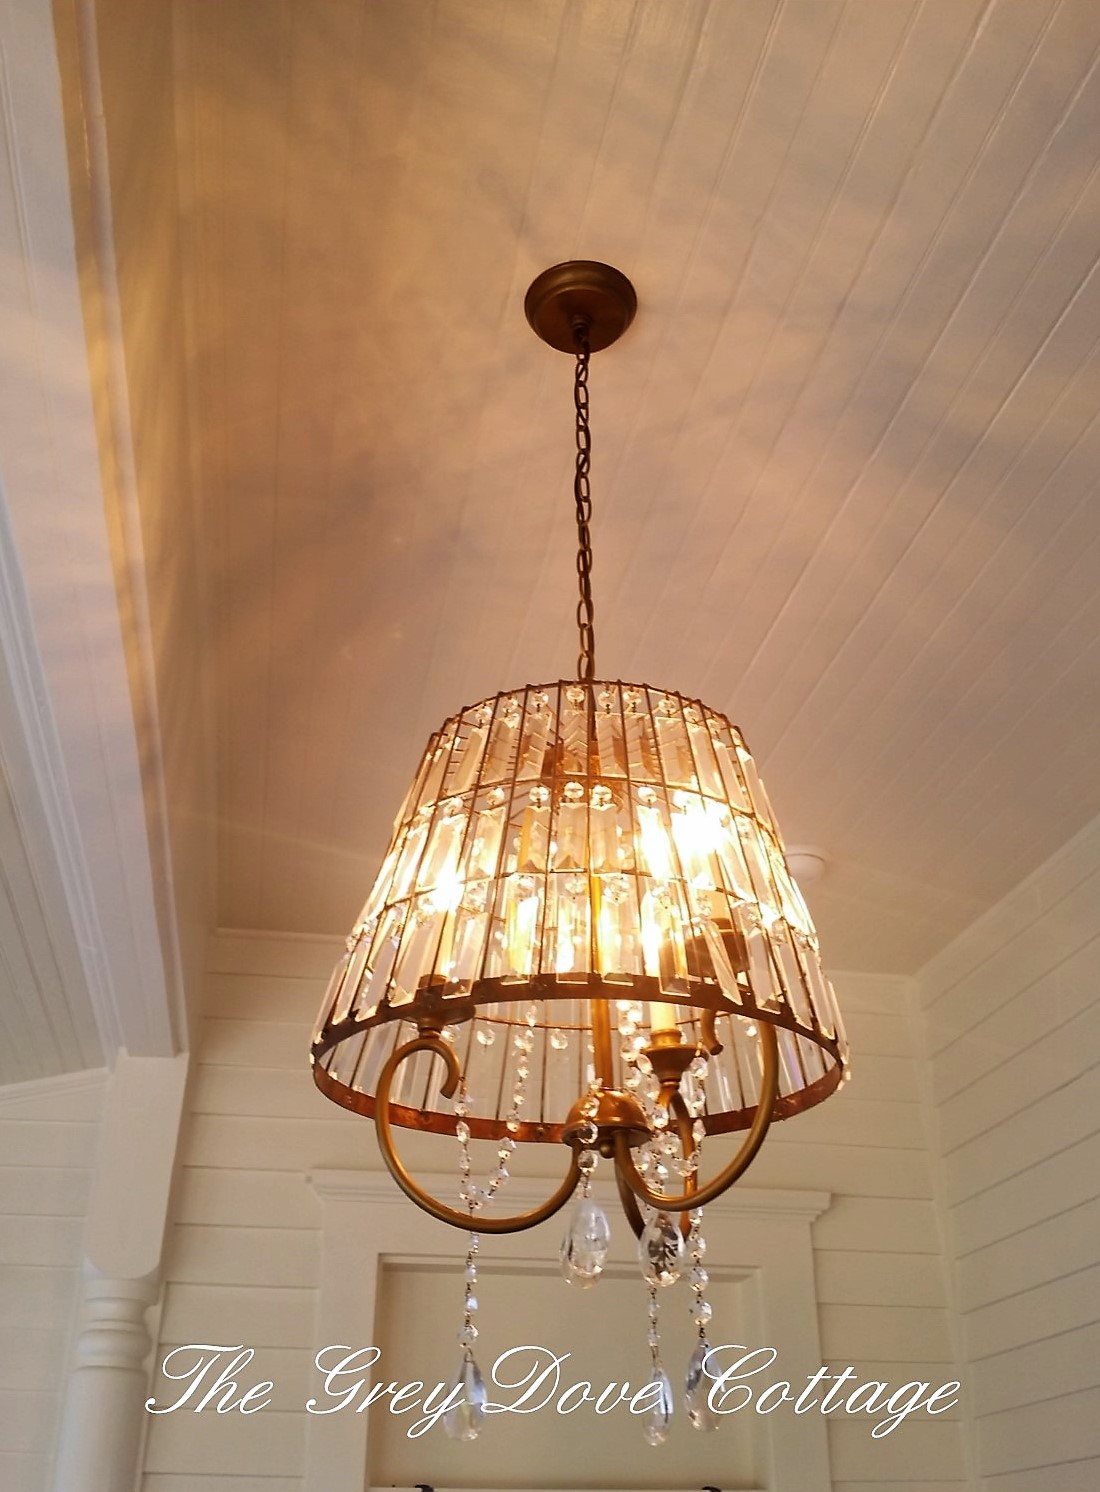 Marvelous Our inherited chandeliers and constructed foyer fixture are finished in oil rubbed bronze Wanting the rods to coordinate with the chandeliers